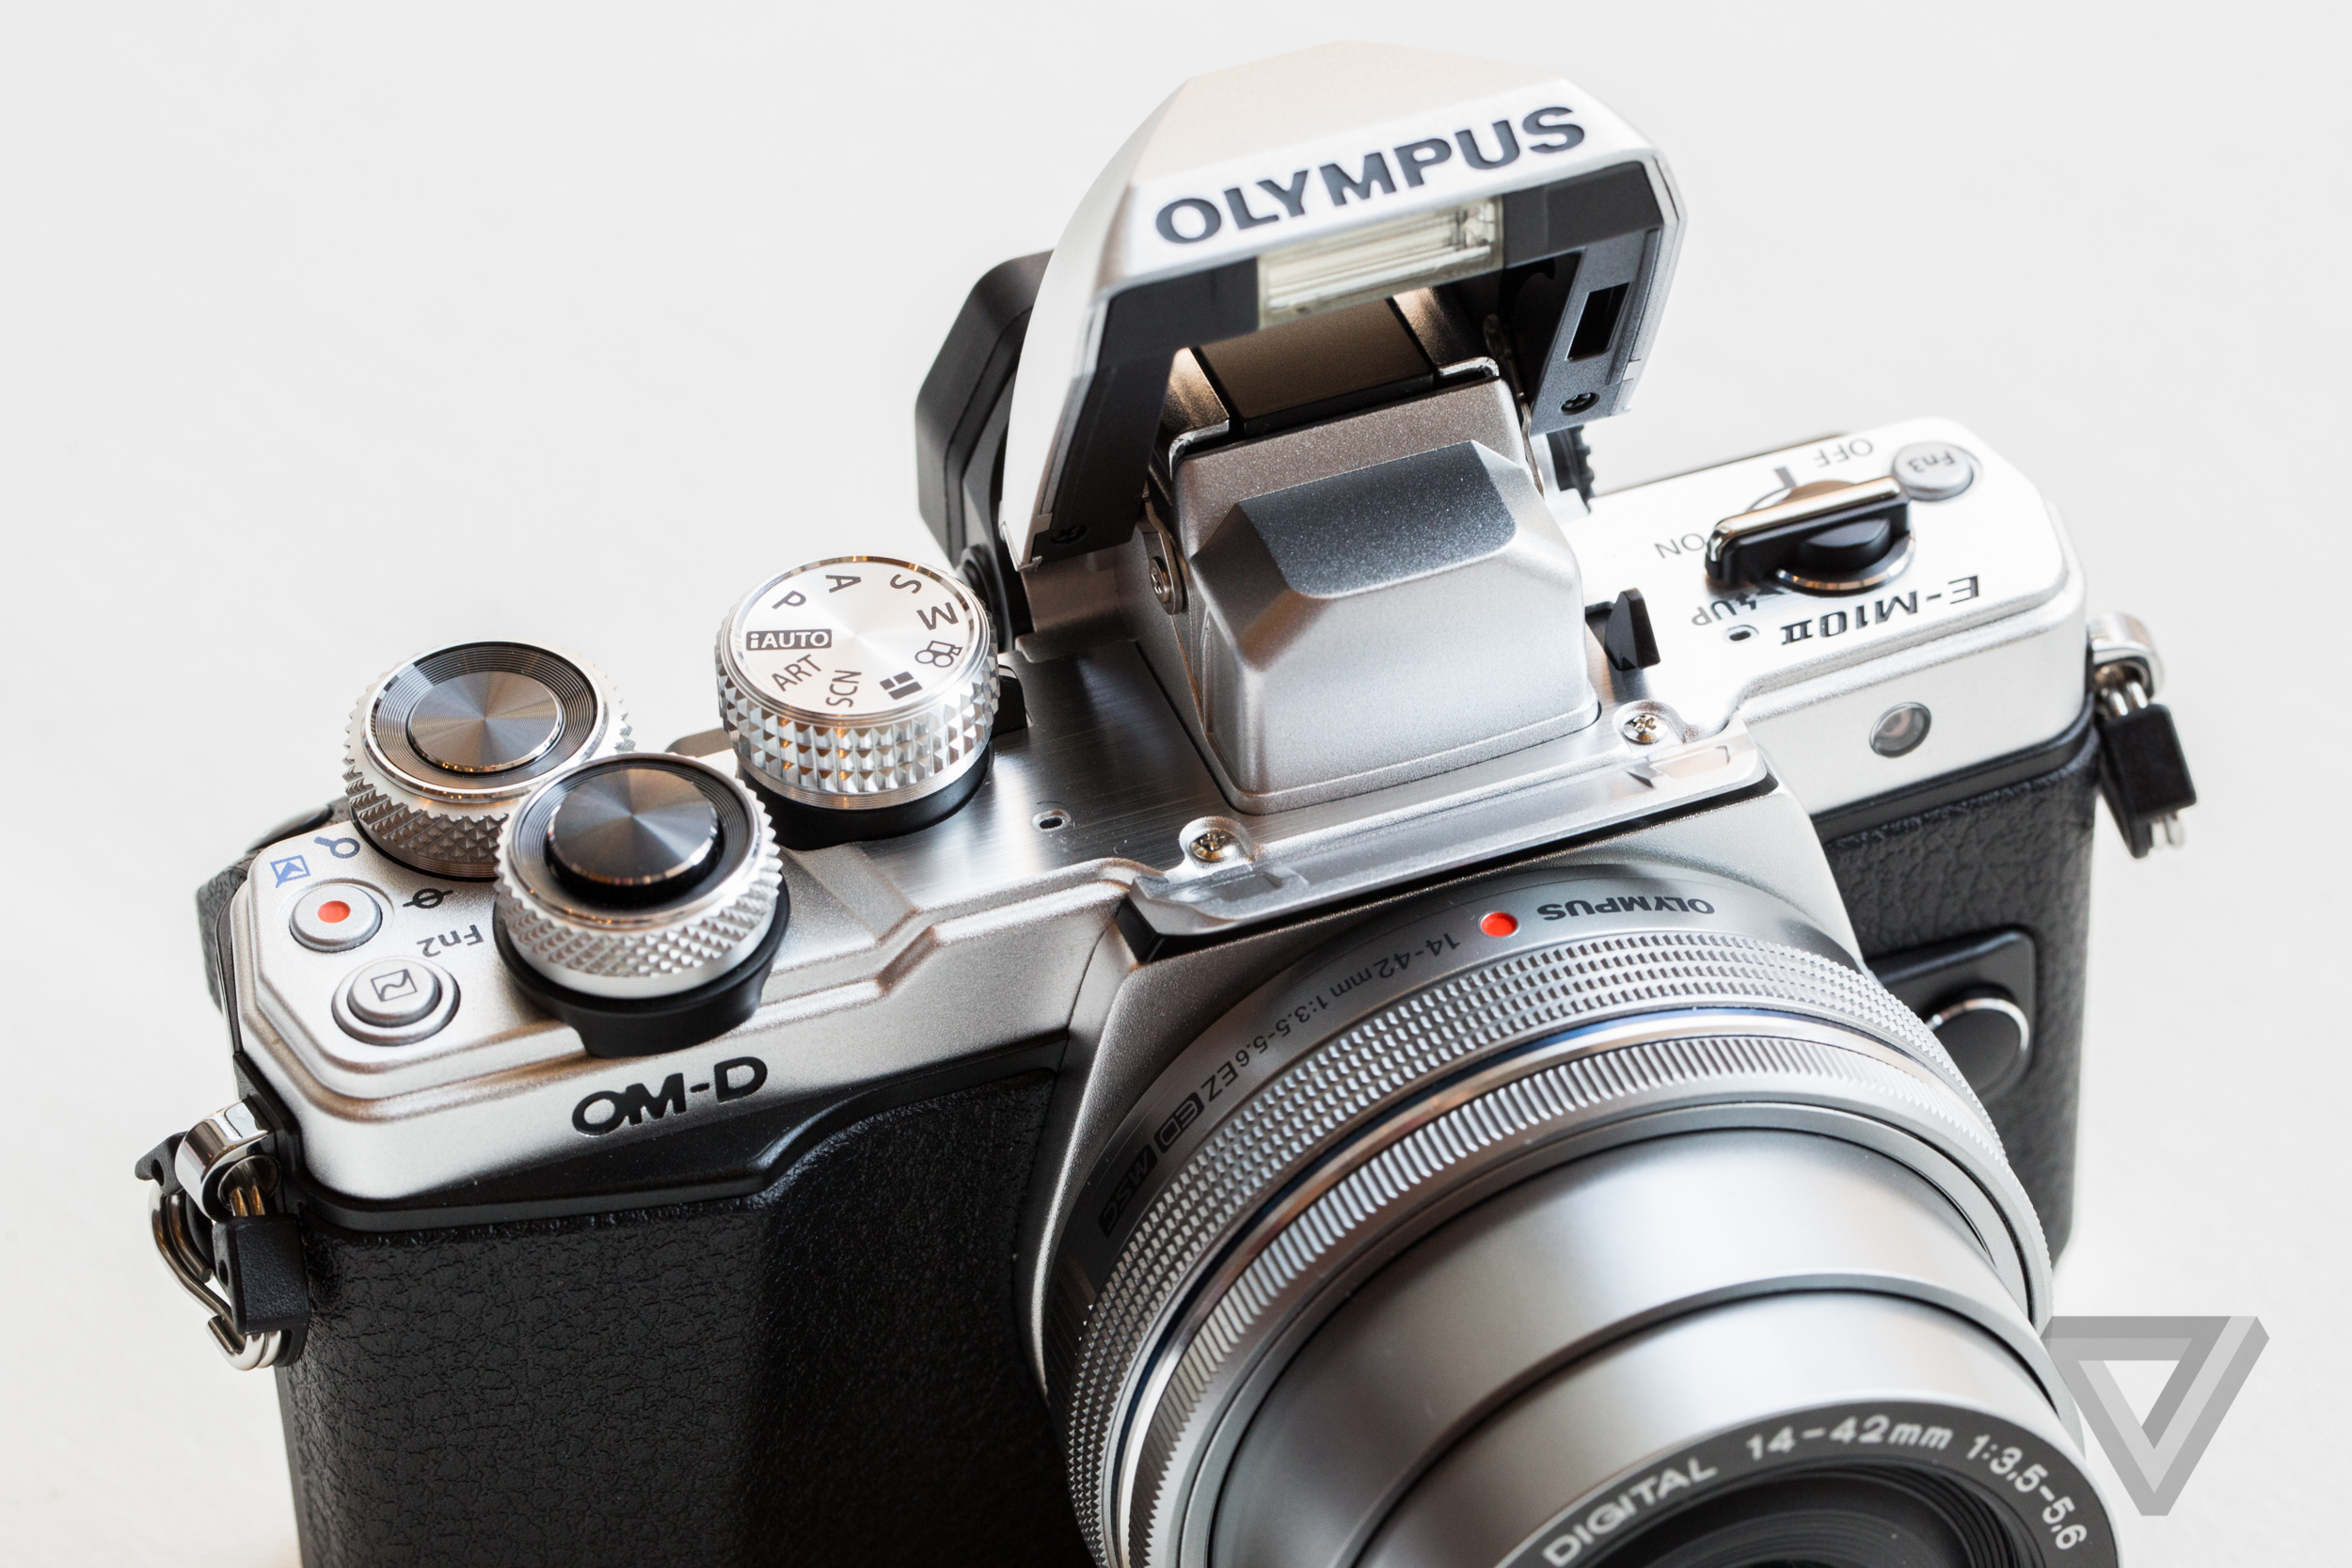 The New Olympus E M10 Mark Ii Is A Tiny Metal Powerhouse Of Camera Om D Kit 14 42mm Ez Silver 1 15